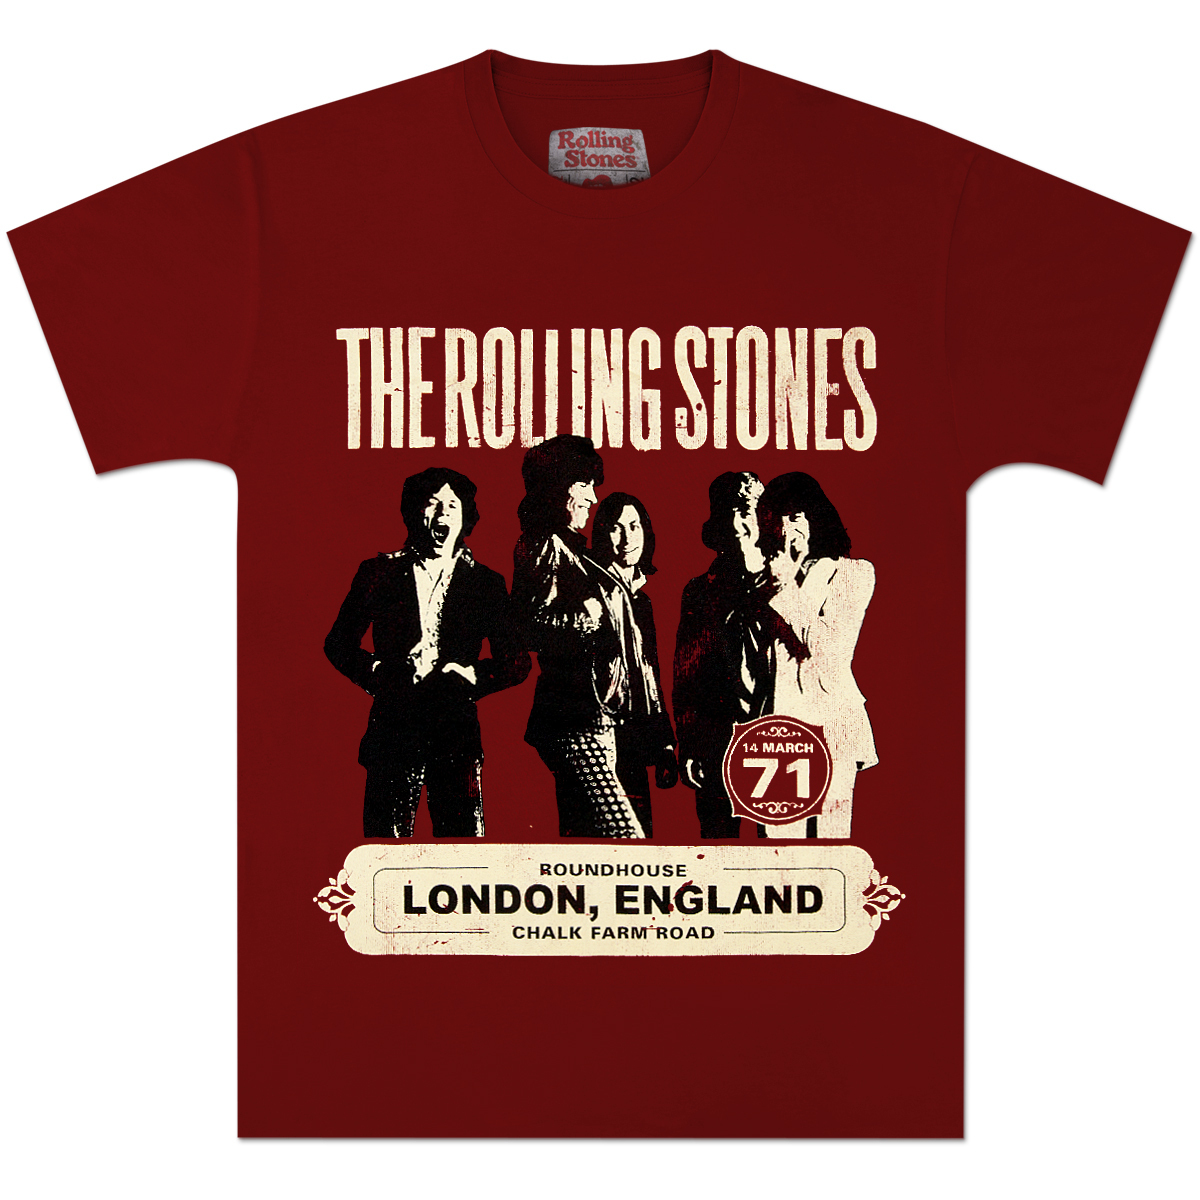 Vintage rolling stones tshirt adult webcam movies for Best selling t shirts on etsy